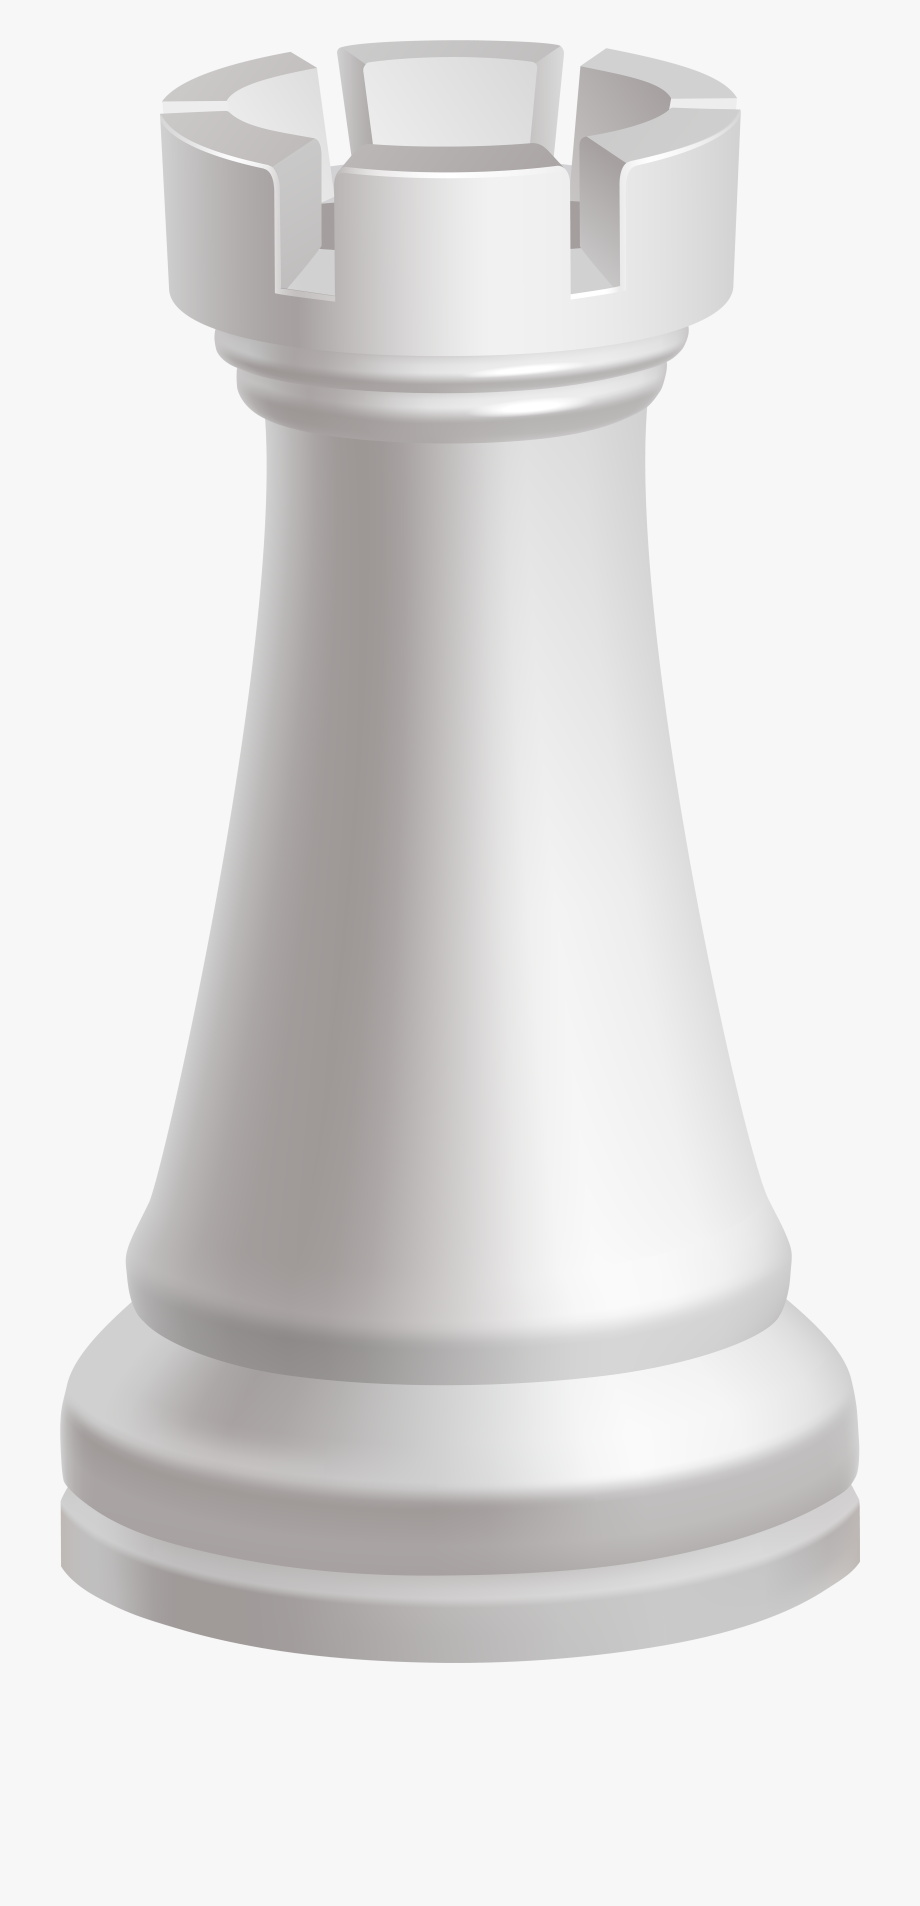 Rook White Chess Piece Png Clip Art.